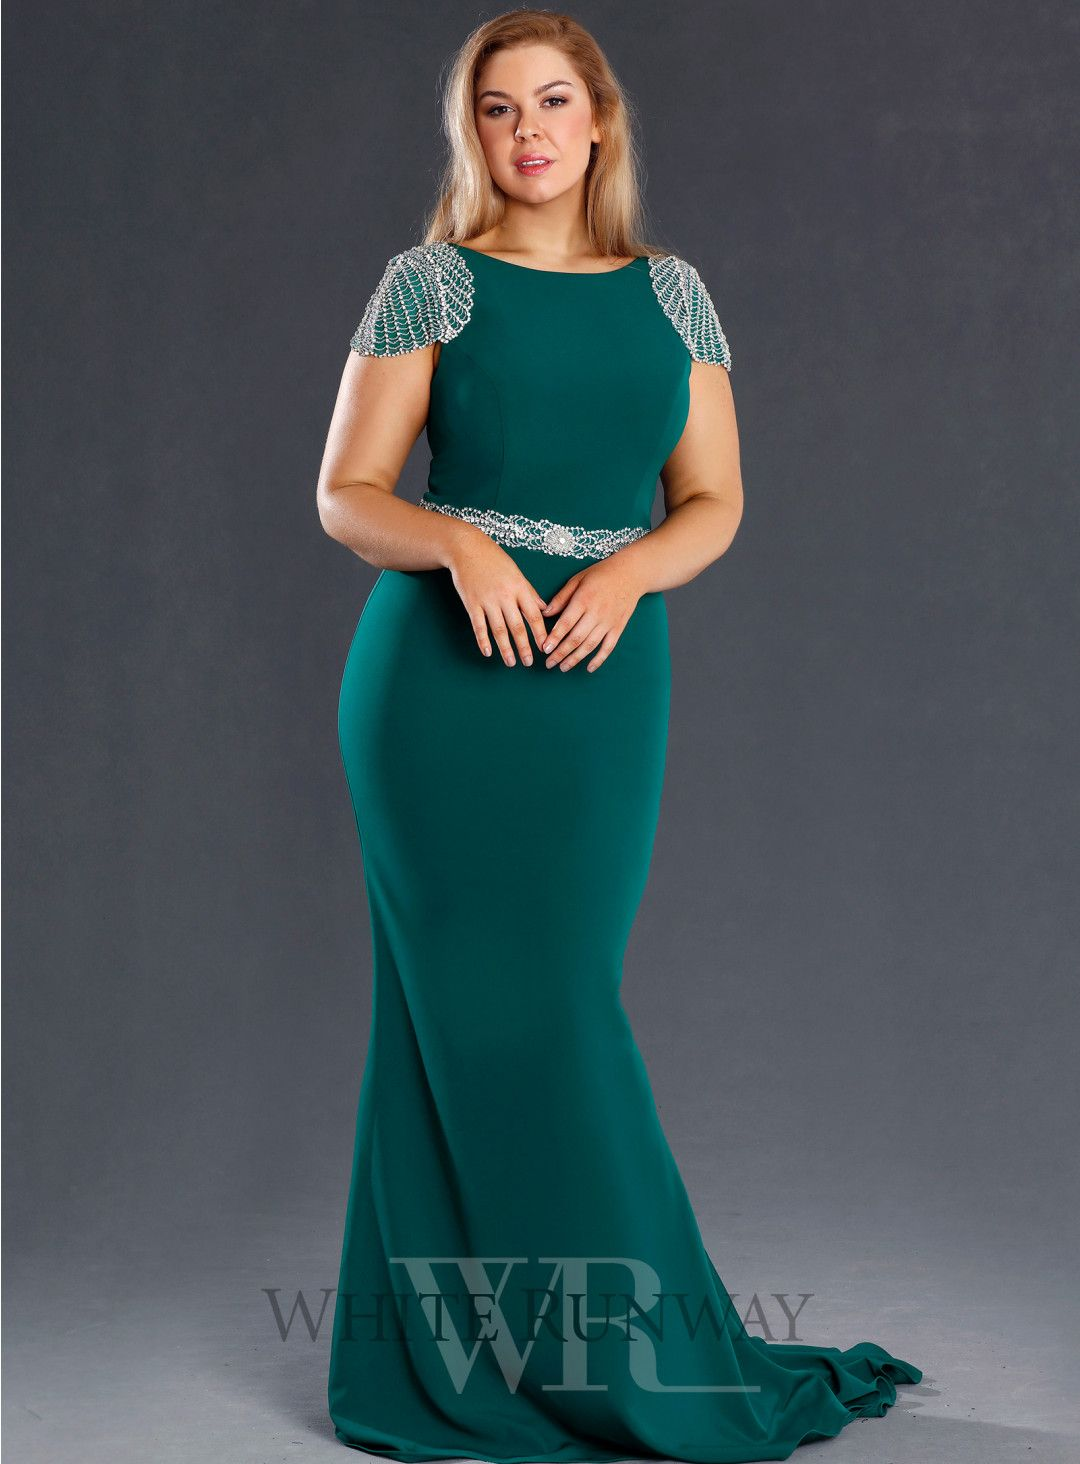 Jadore j emerald fashion pinterest full length dresses